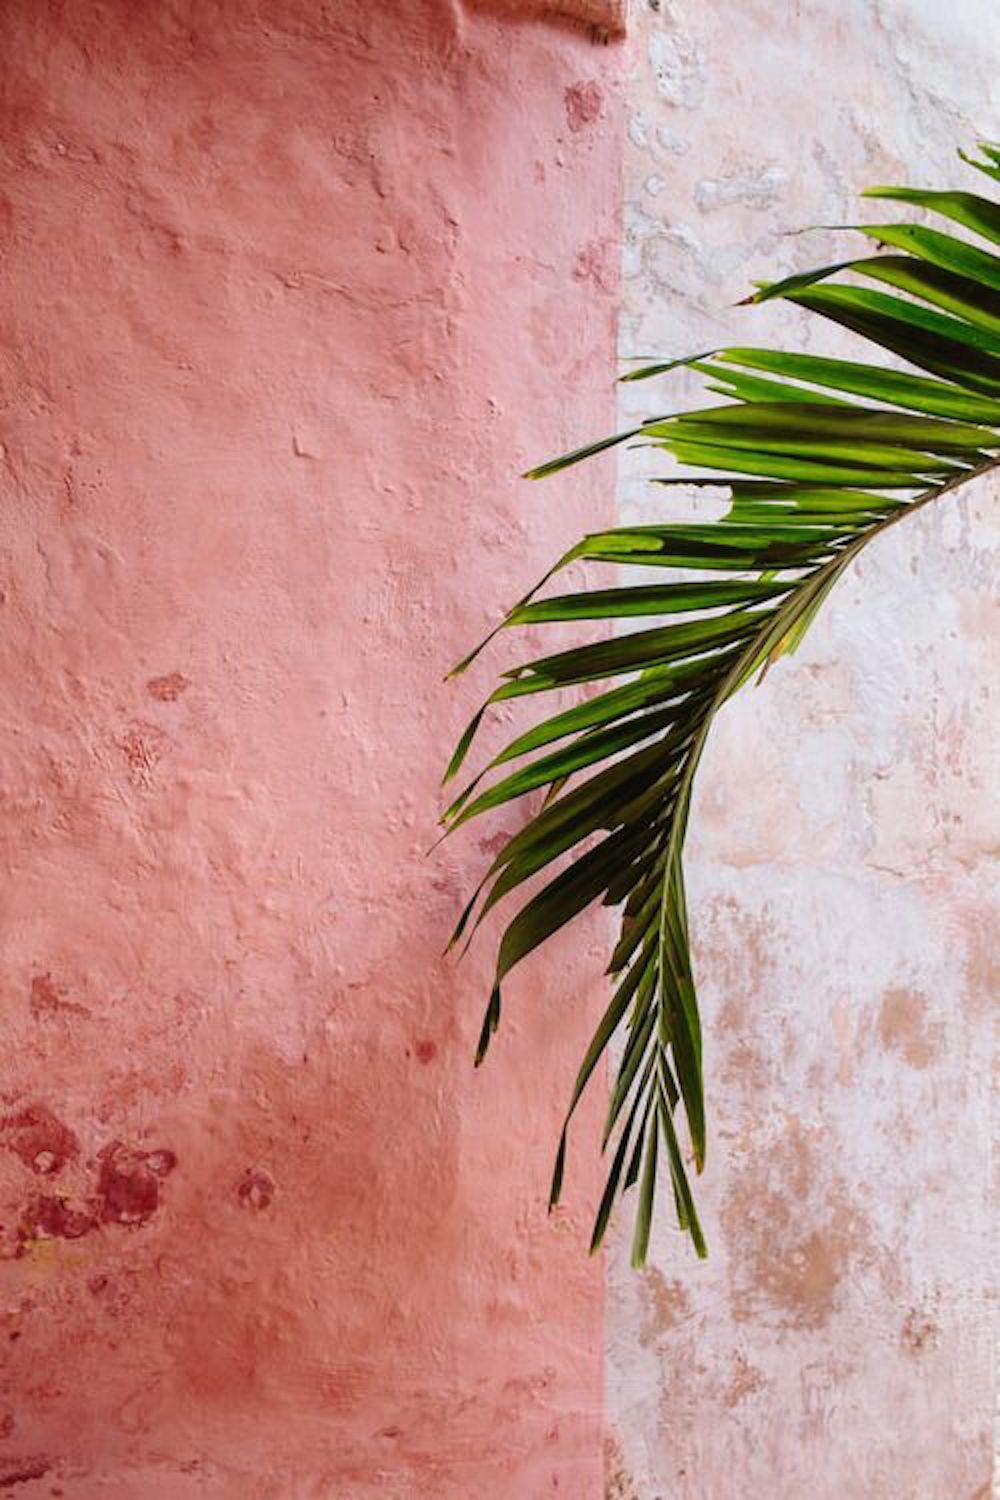 entracing palm tree type house plant. pink  blush photography art inspiration fashion runway editorial models tumblr purienne vogue magazine